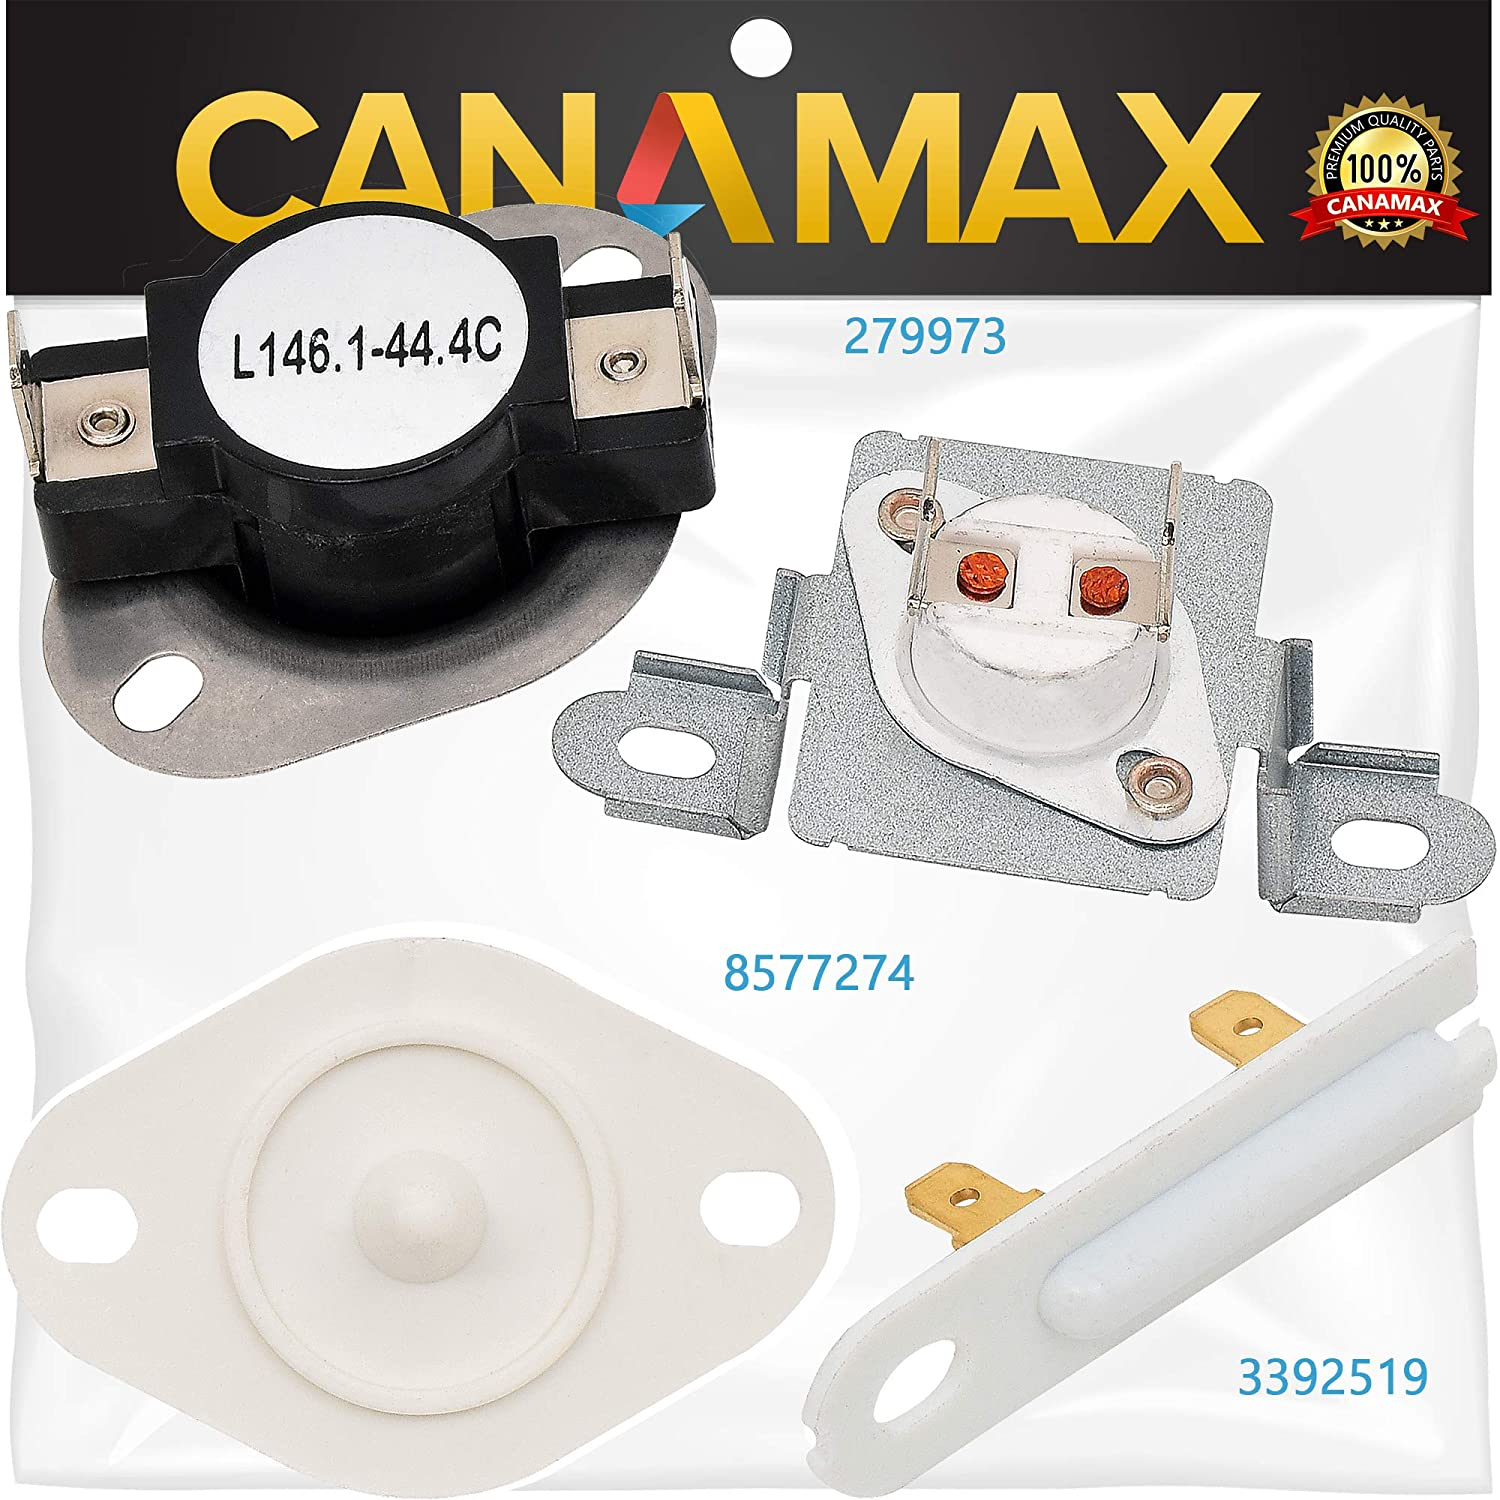 3392519 & 8577274 & 279973 Dryer Kit Replacement by Canamax for Whirlpool & Kenmore Dryers